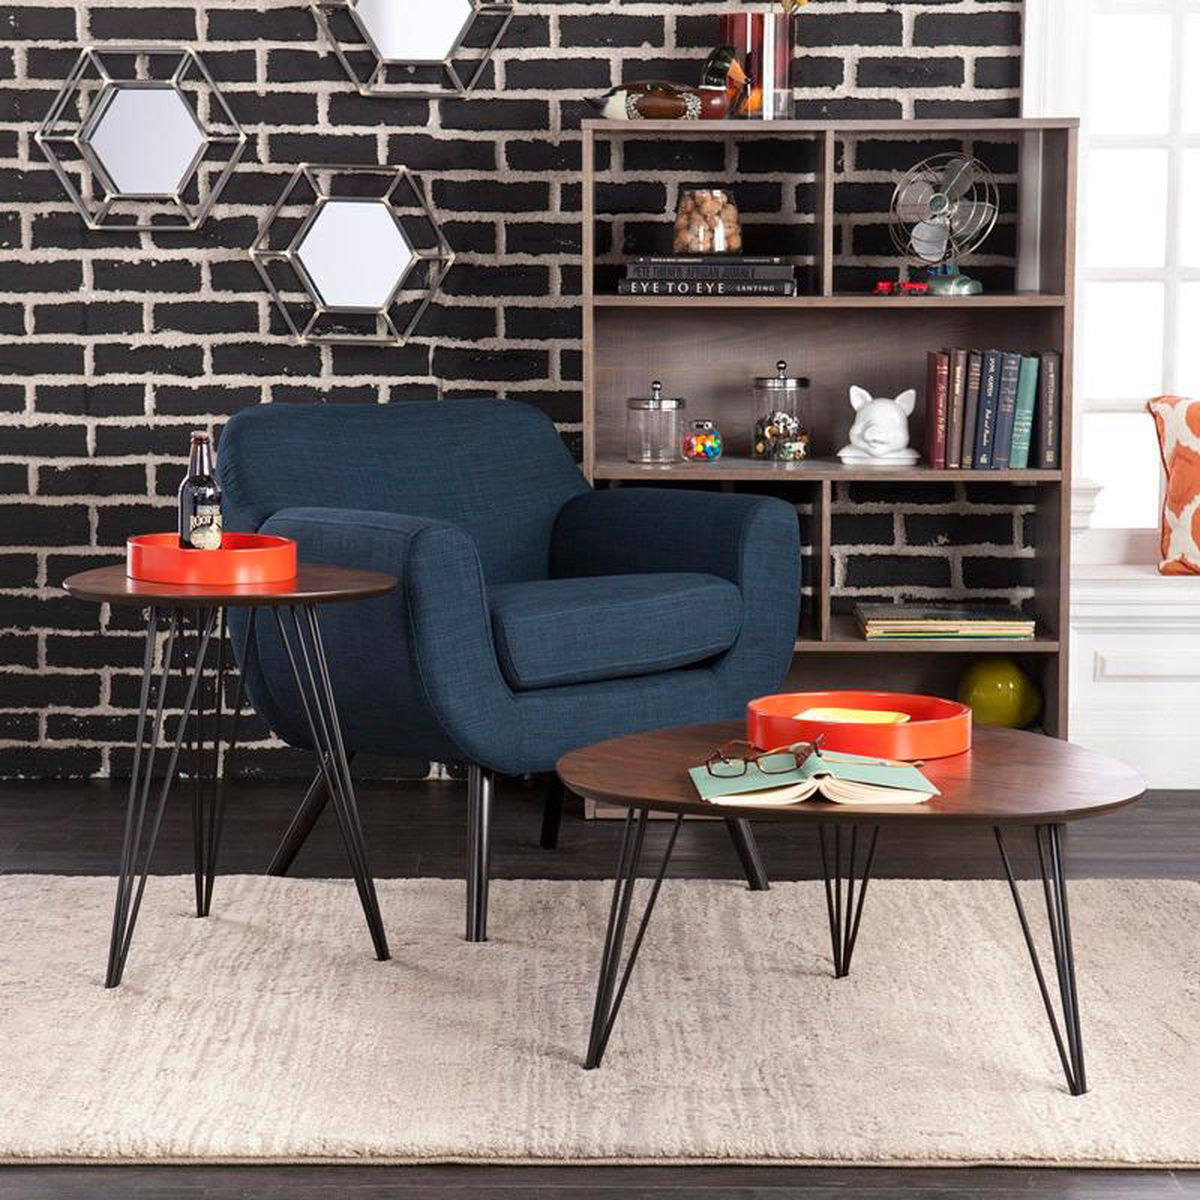 piece accent table set bizchair holly and martin ham living room sets our bannock mid century modern industrial with black hairpin metal legs tiffany tree lamp brass bistro wicker